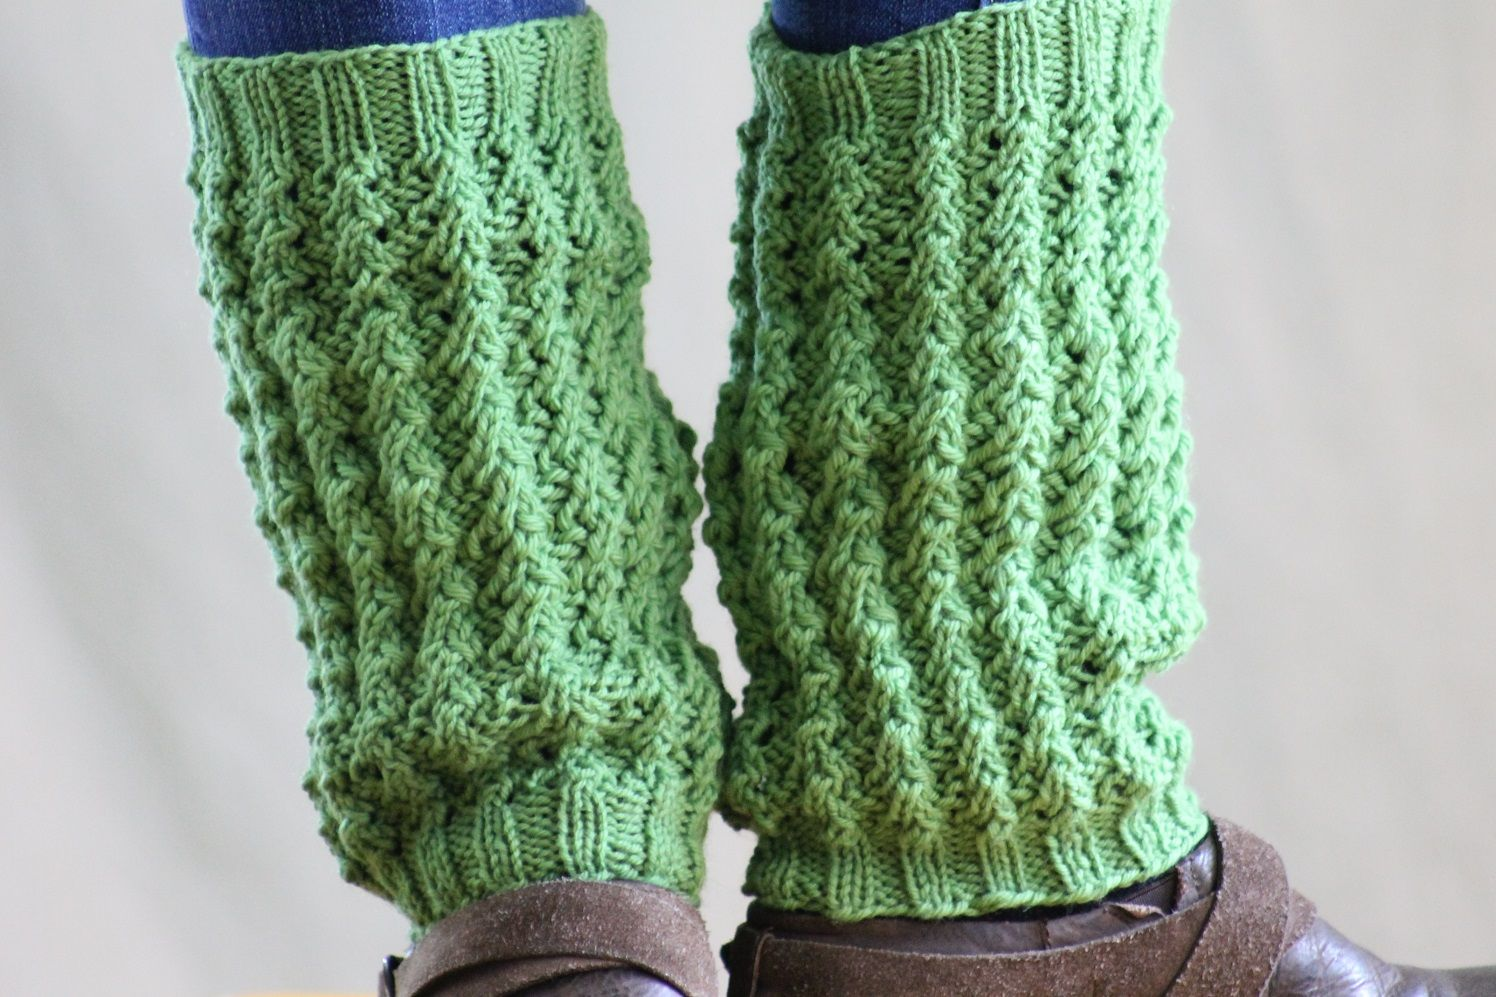 Free Knitting Pattern - Legwarmers: Gradated Rib Leg Warmers ...